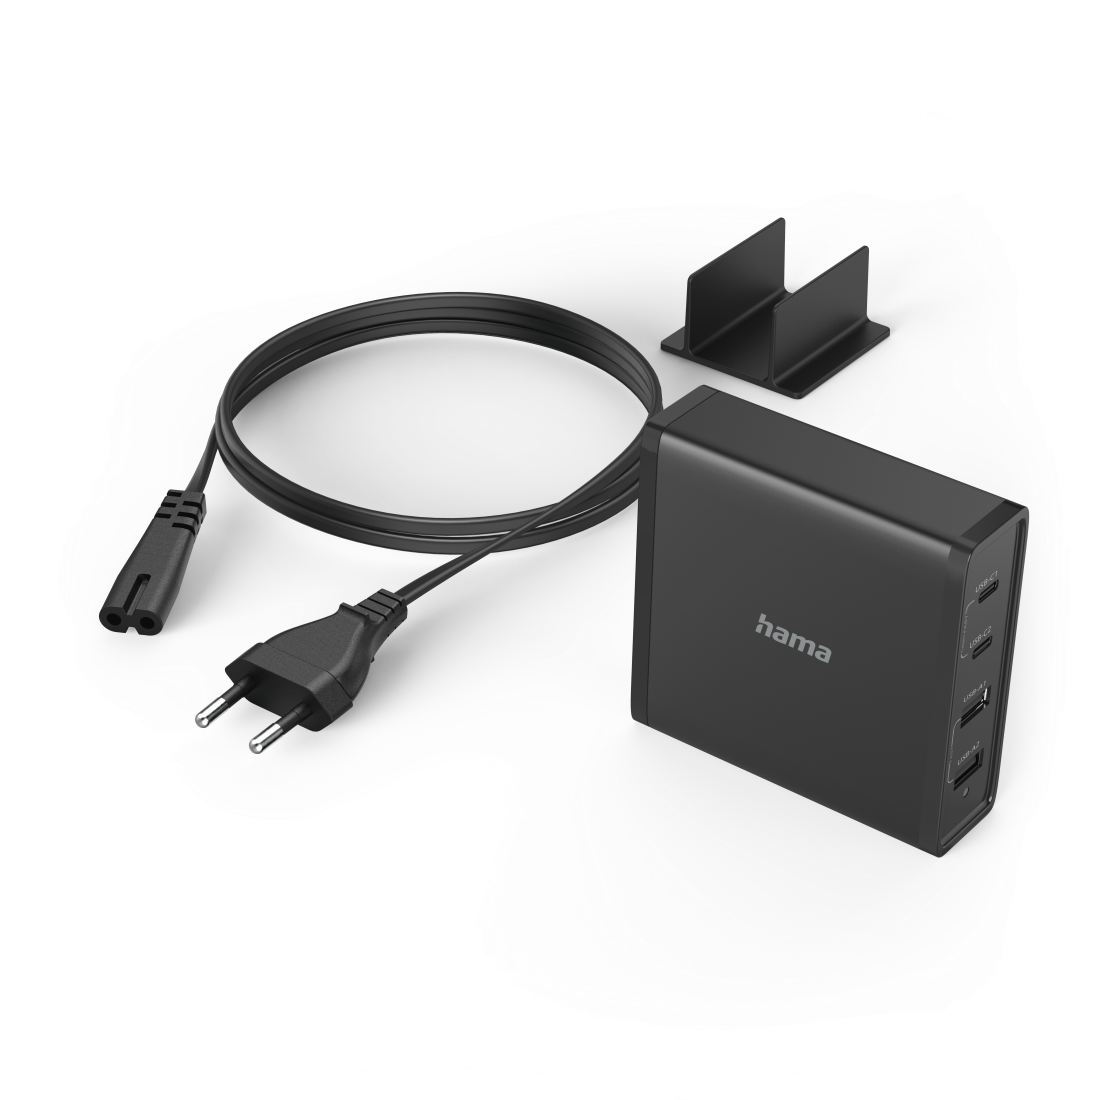 abx3 High-Res Image 3 - Hama, Universeel USB-C-oplaadstation, 4-voudig, Power Delivery (PD), 5-20V/65W